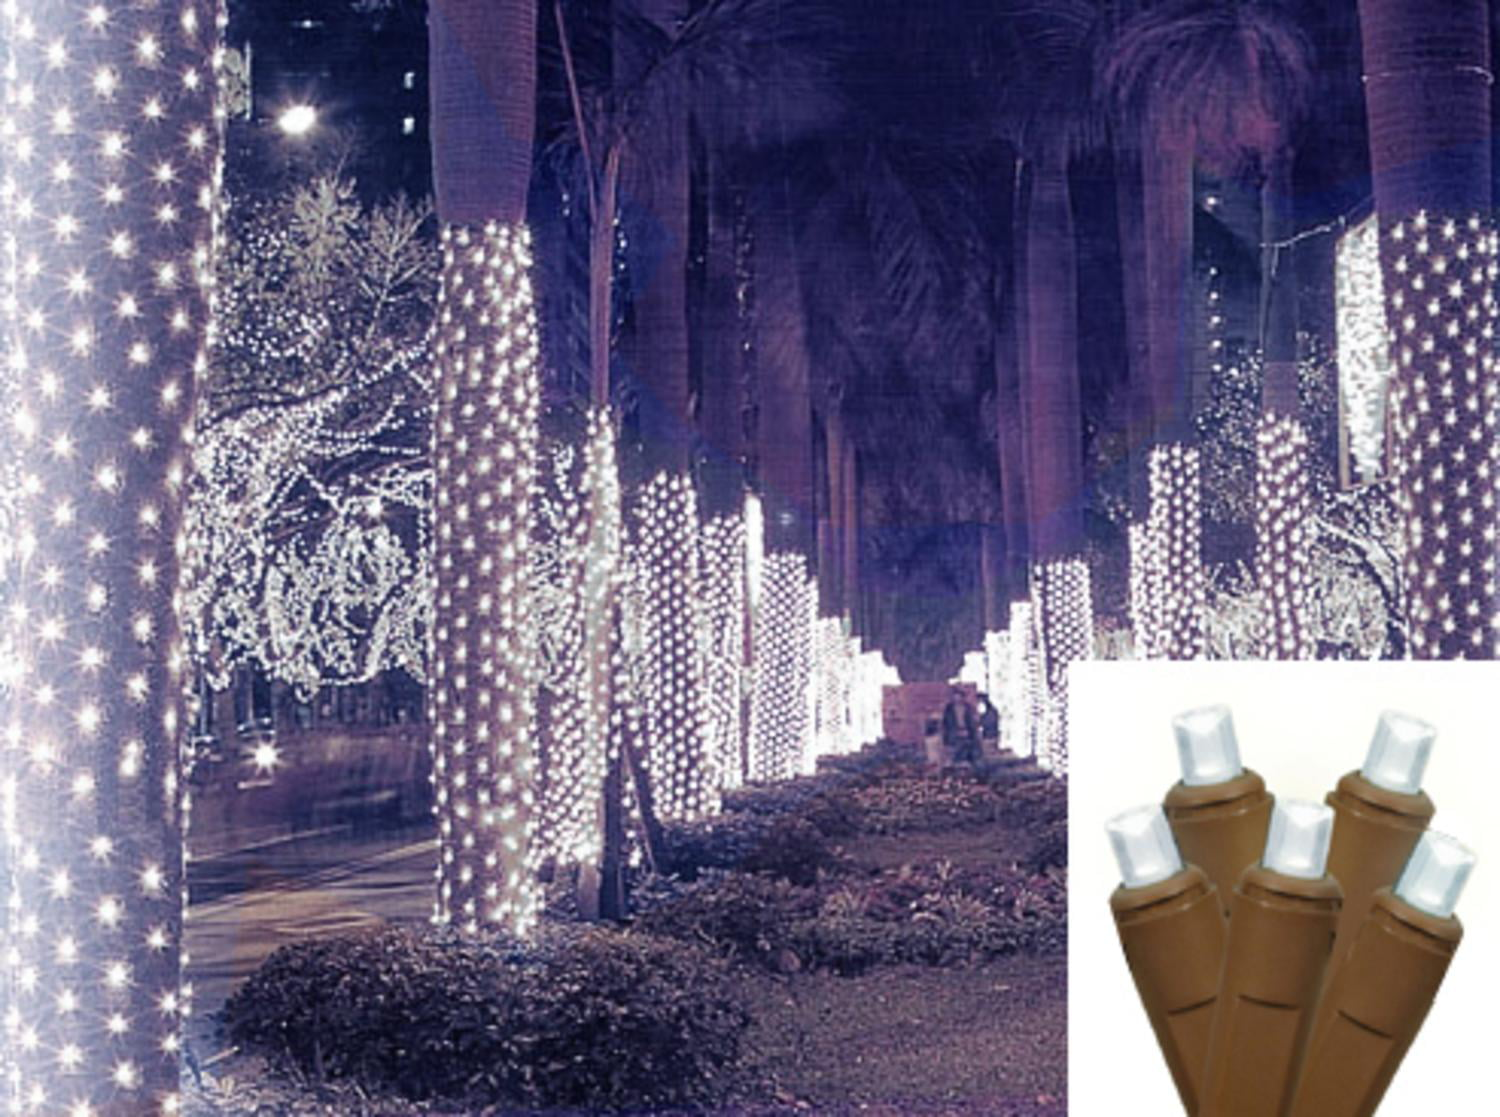 2 x 8 cool white led net style tree trunk wrap christmas lights brown wire walmartcom - Led Net Christmas Lights